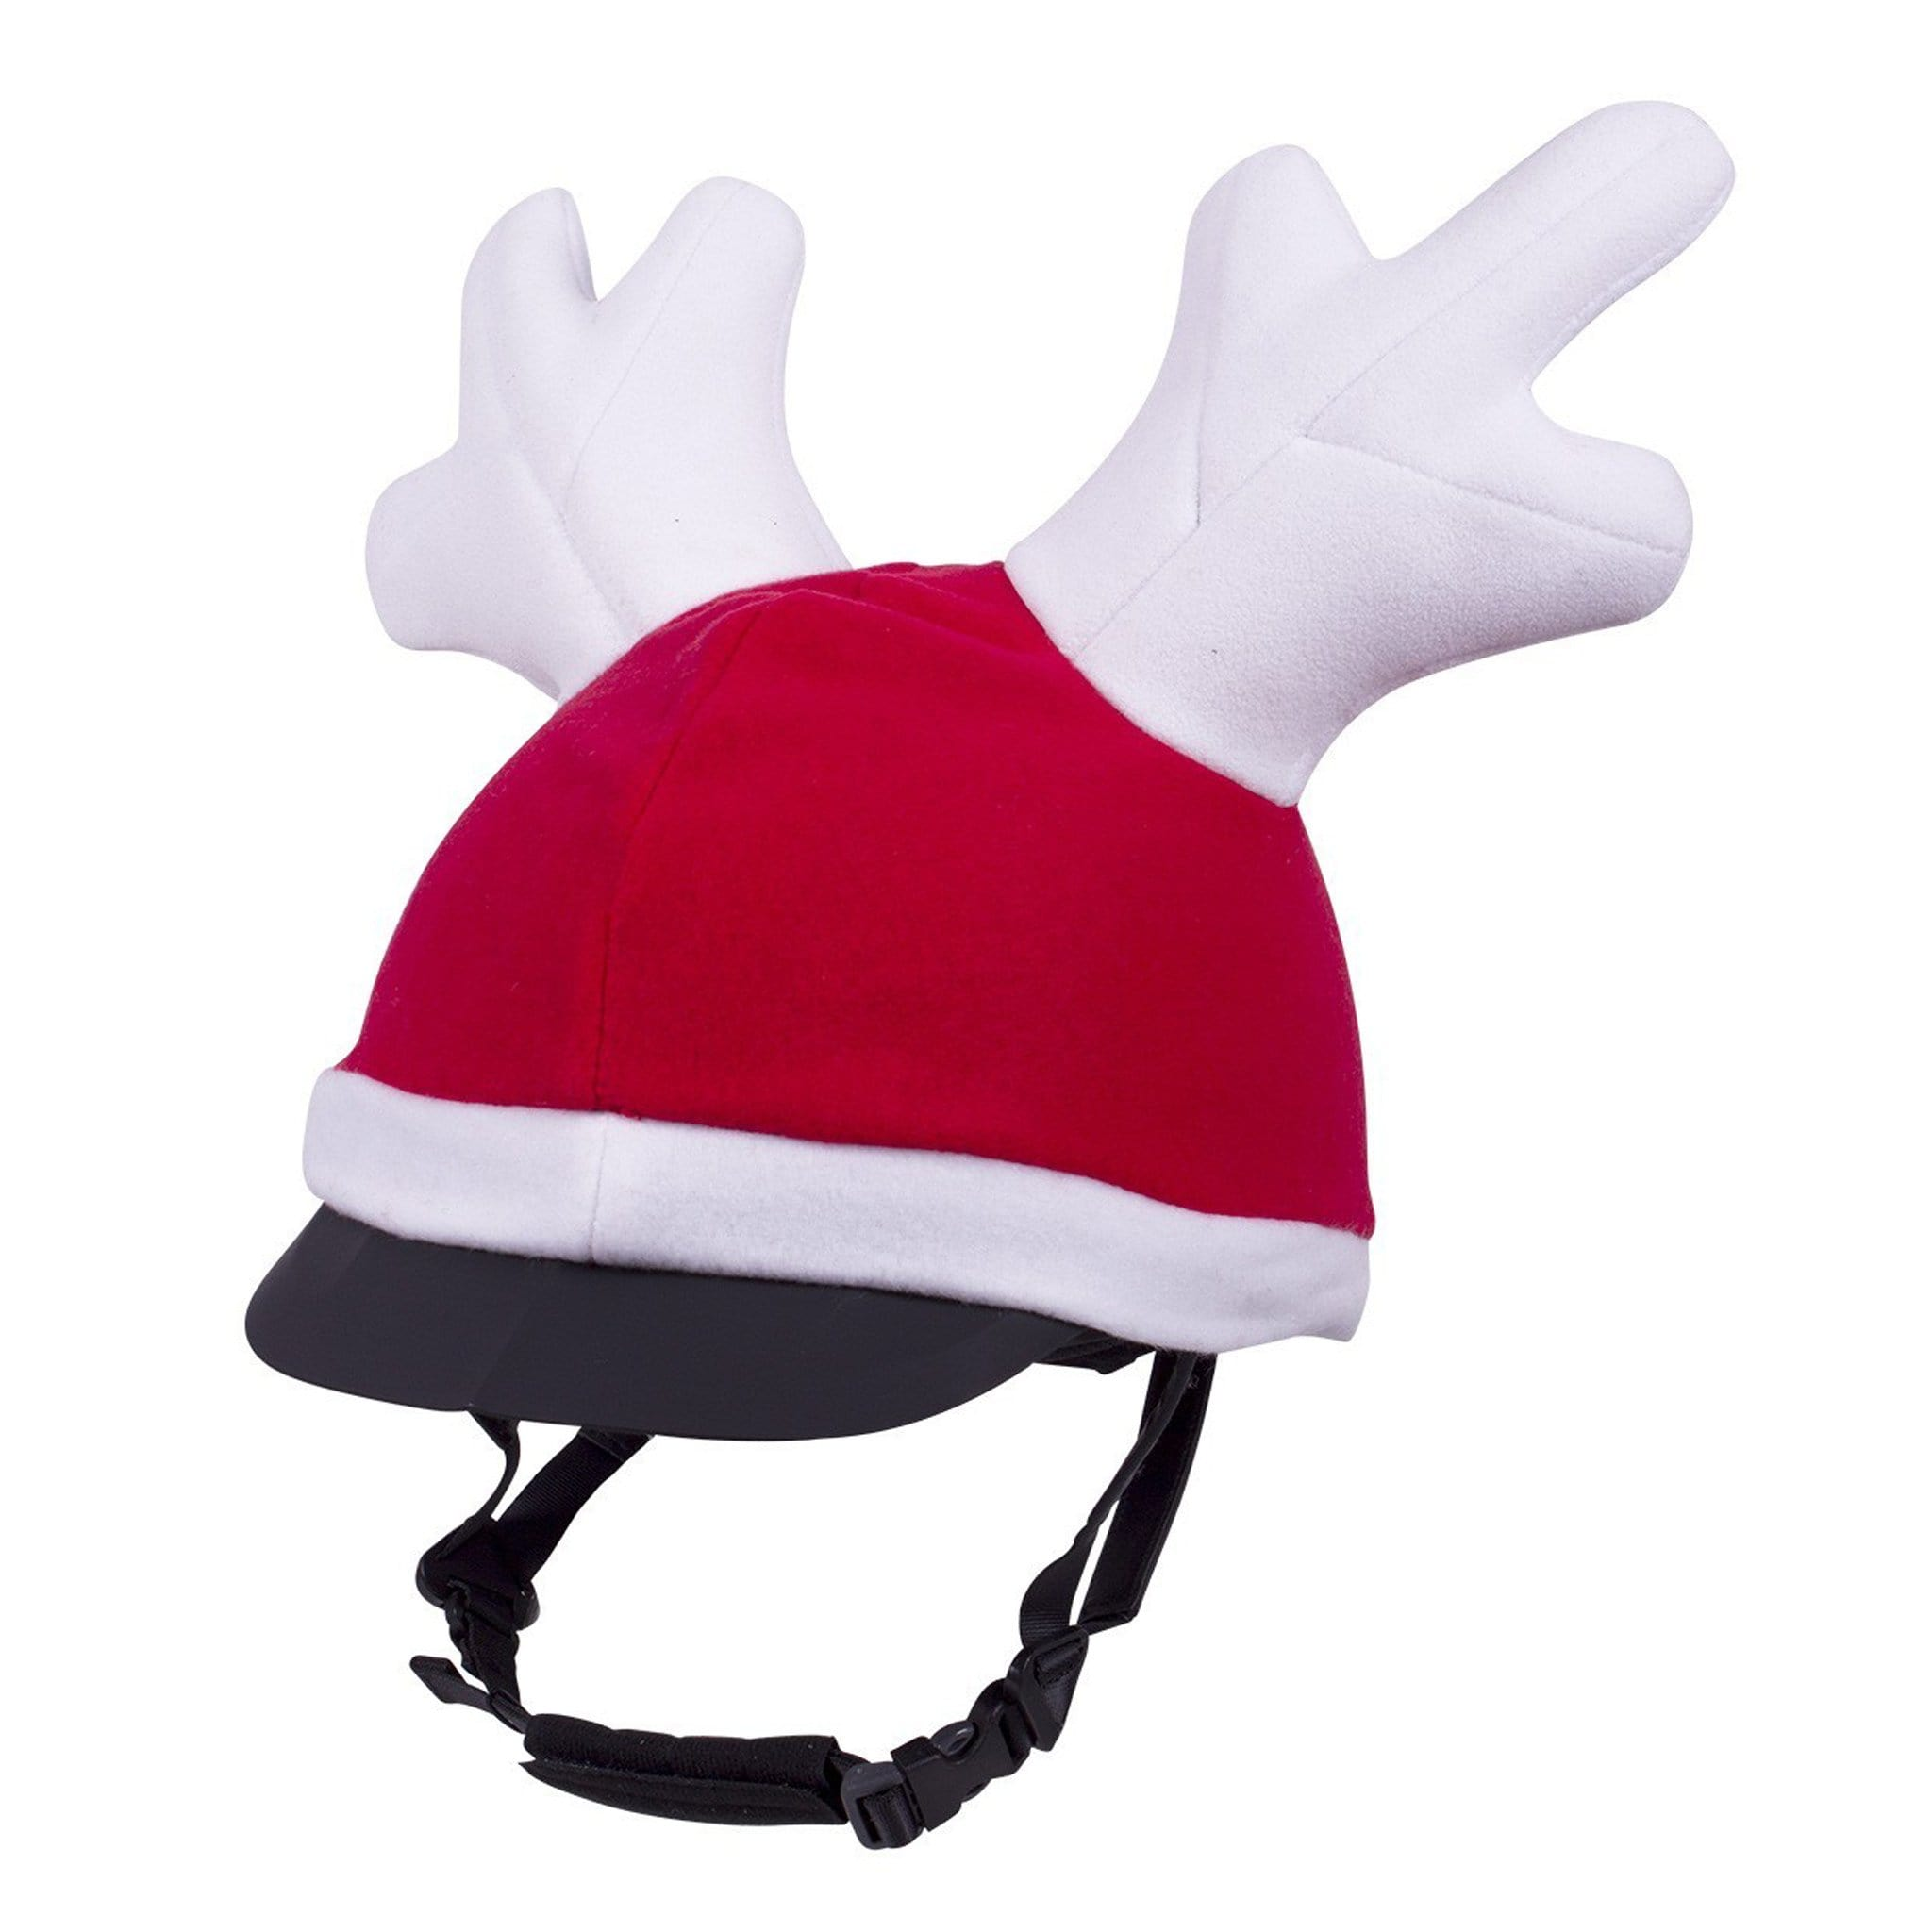 QHP Christmas Rider's Reindeer Hat Red 8318